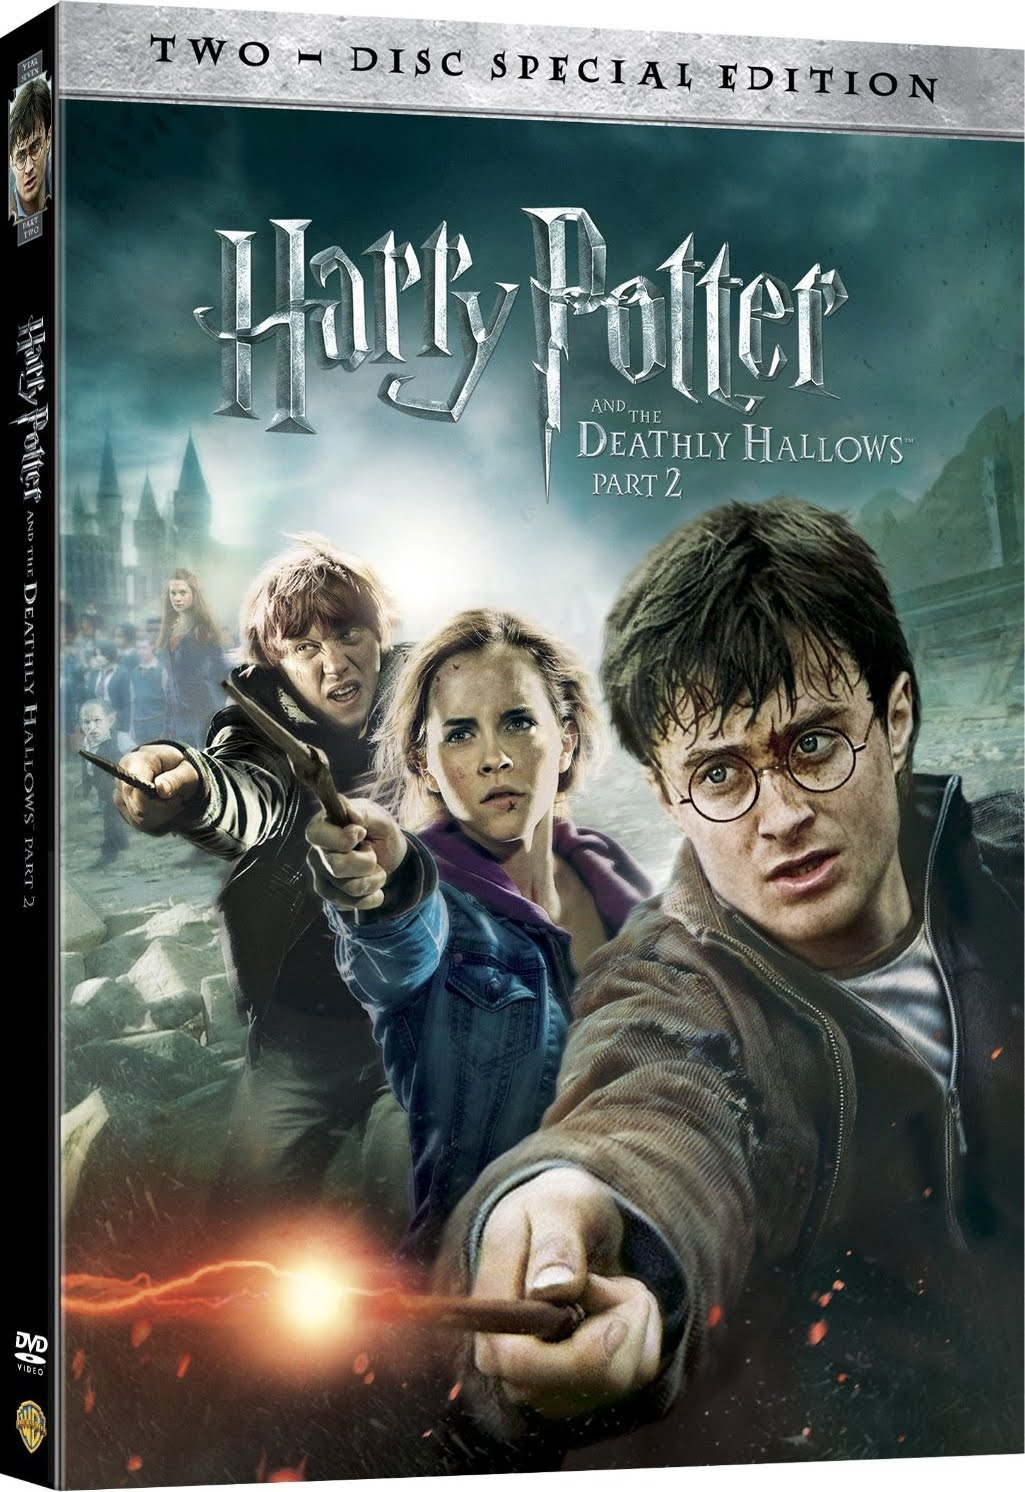 Dual Audio Mania Harry Potter And The Deathly Hallows Part 2 2011